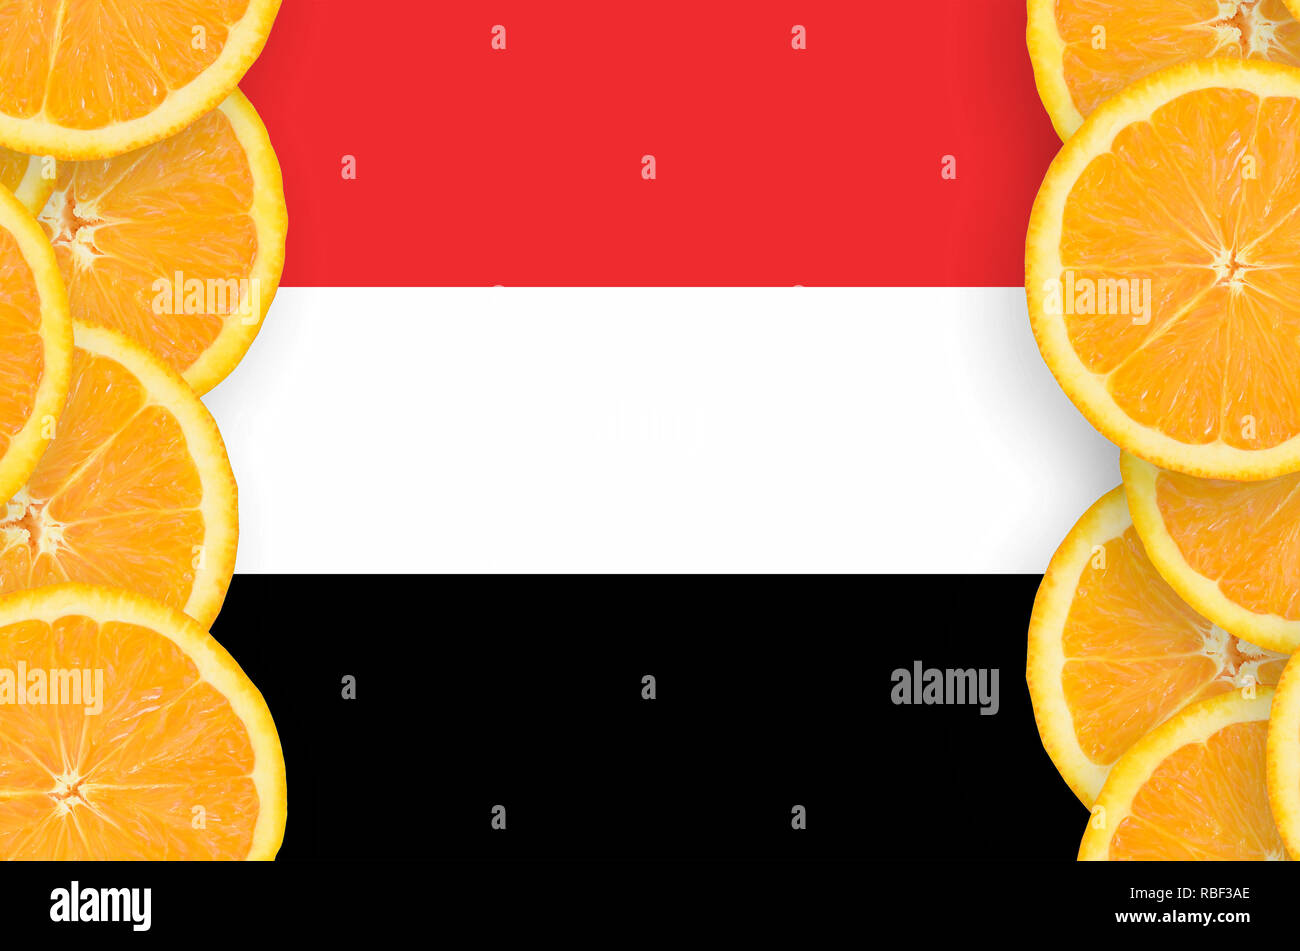 Yemen flag  in vertical frame of orange citrus fruit slices. Concept of growing as well as import and export of citrus fruits - Stock Image